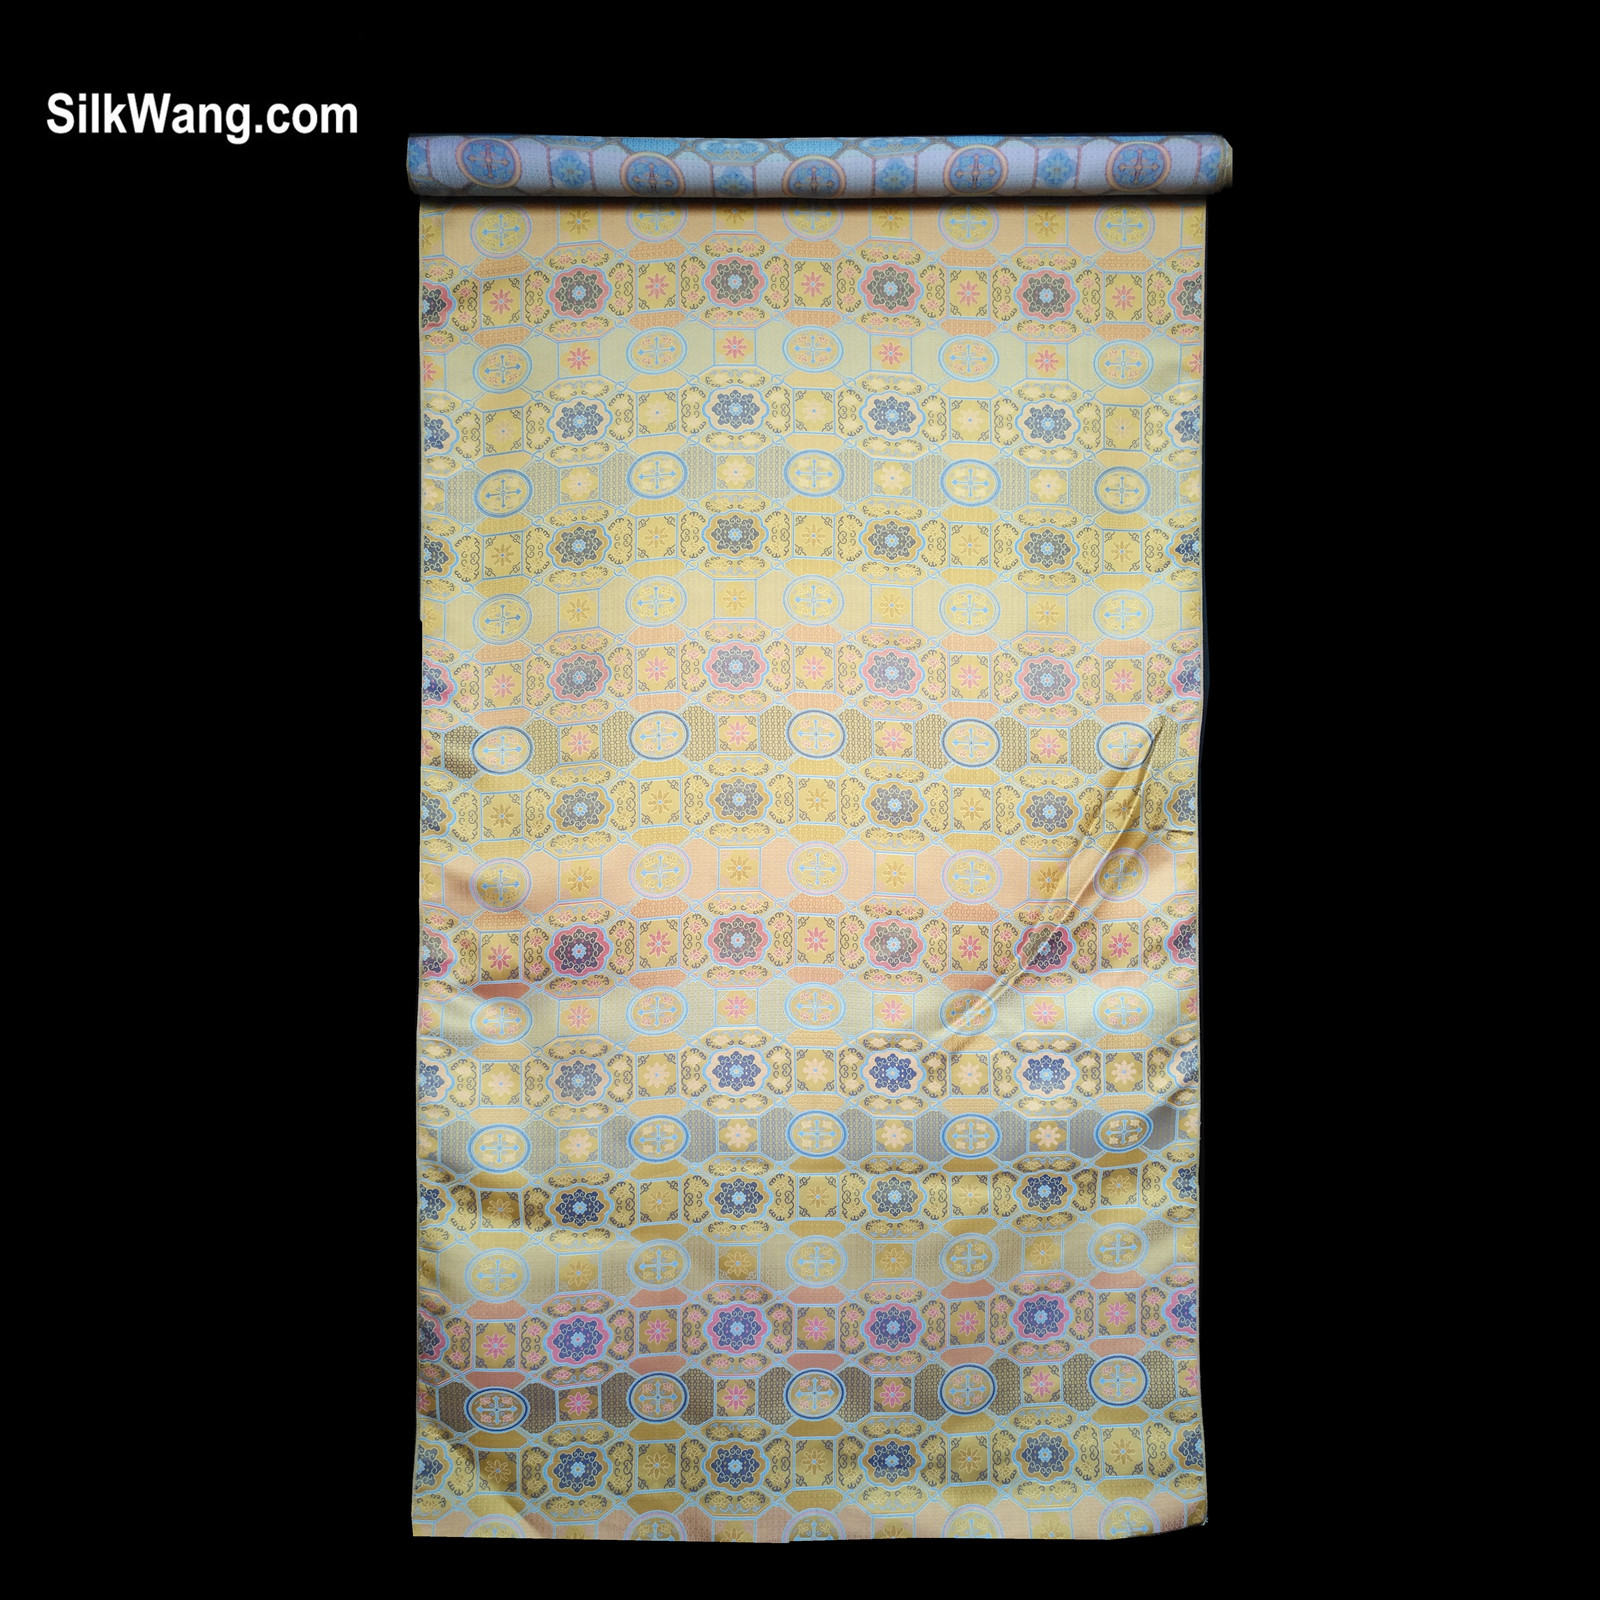 Silk, brocade, fabric, gold, yellow, blue, pink, geometric, pattern, and mixed flowers.